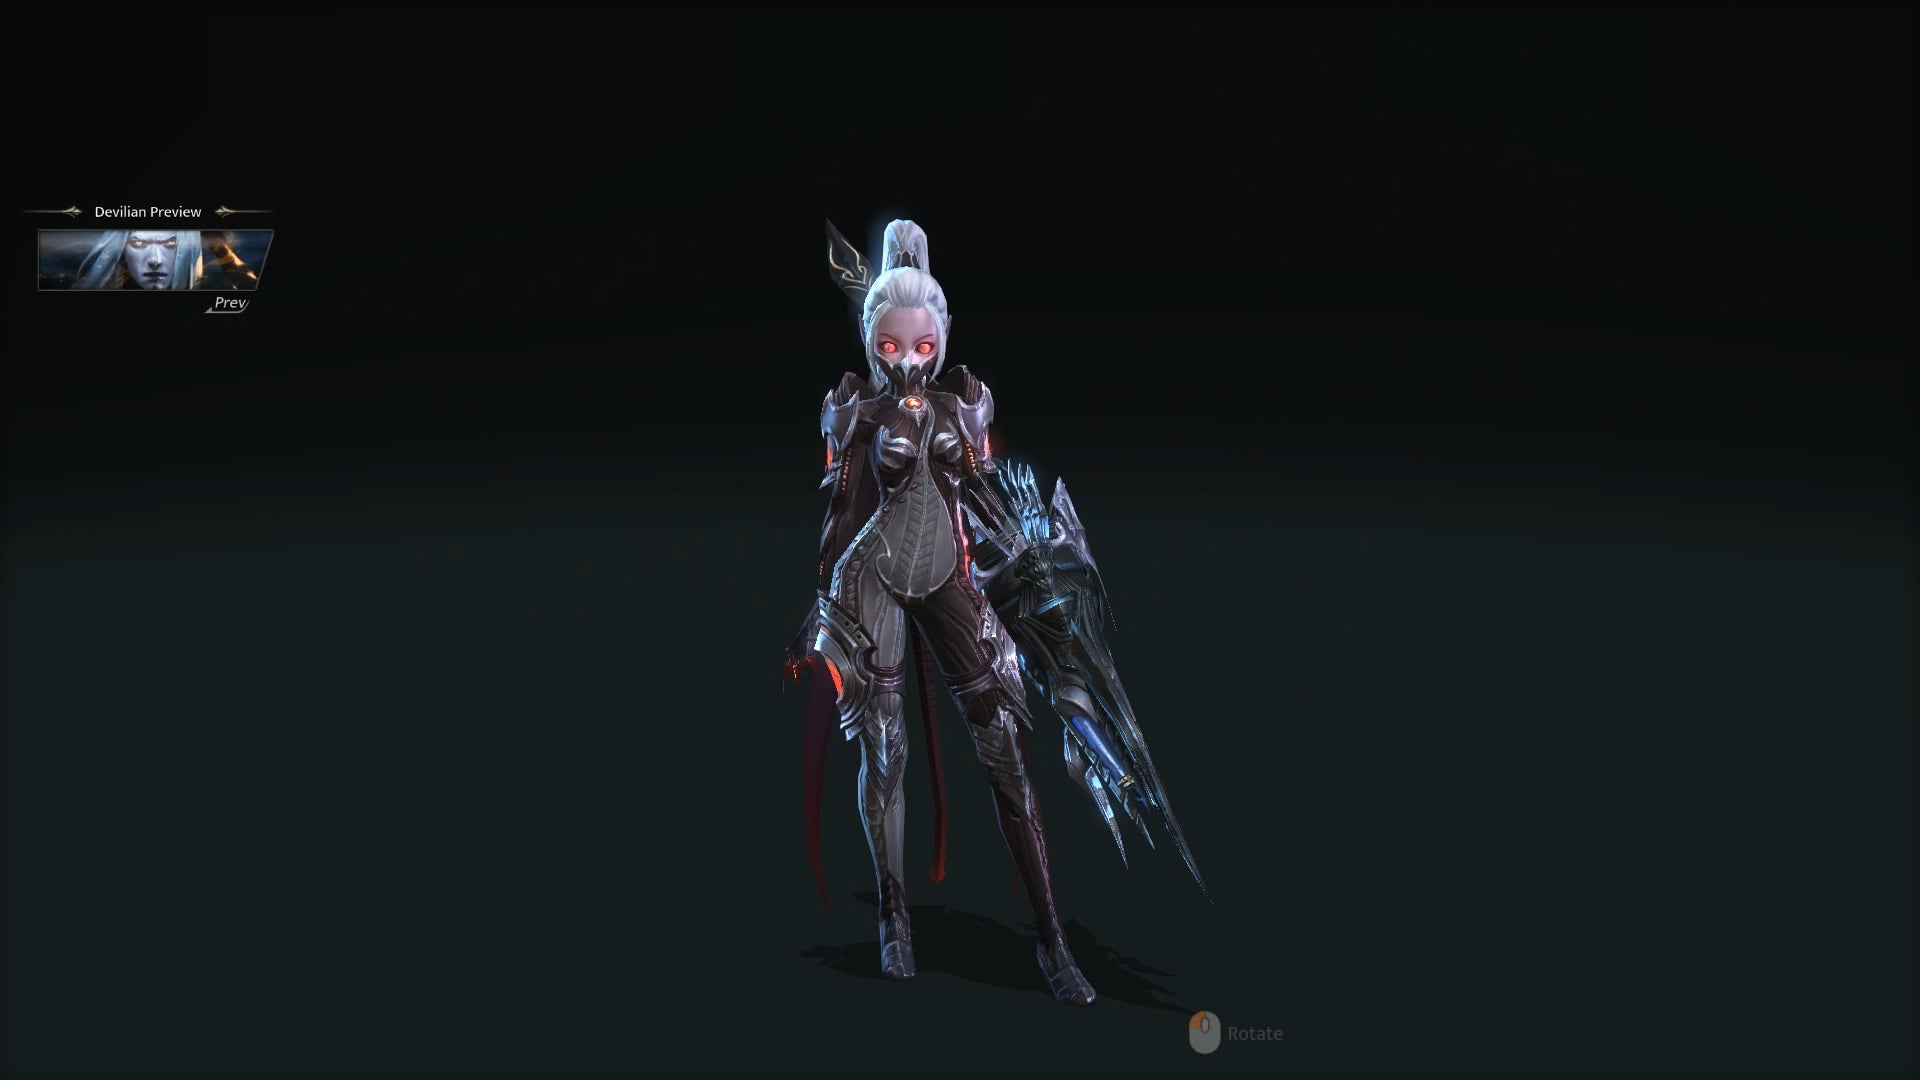 Getting Started With Devilian, The Mildly Awkward Diablo-Style MMO